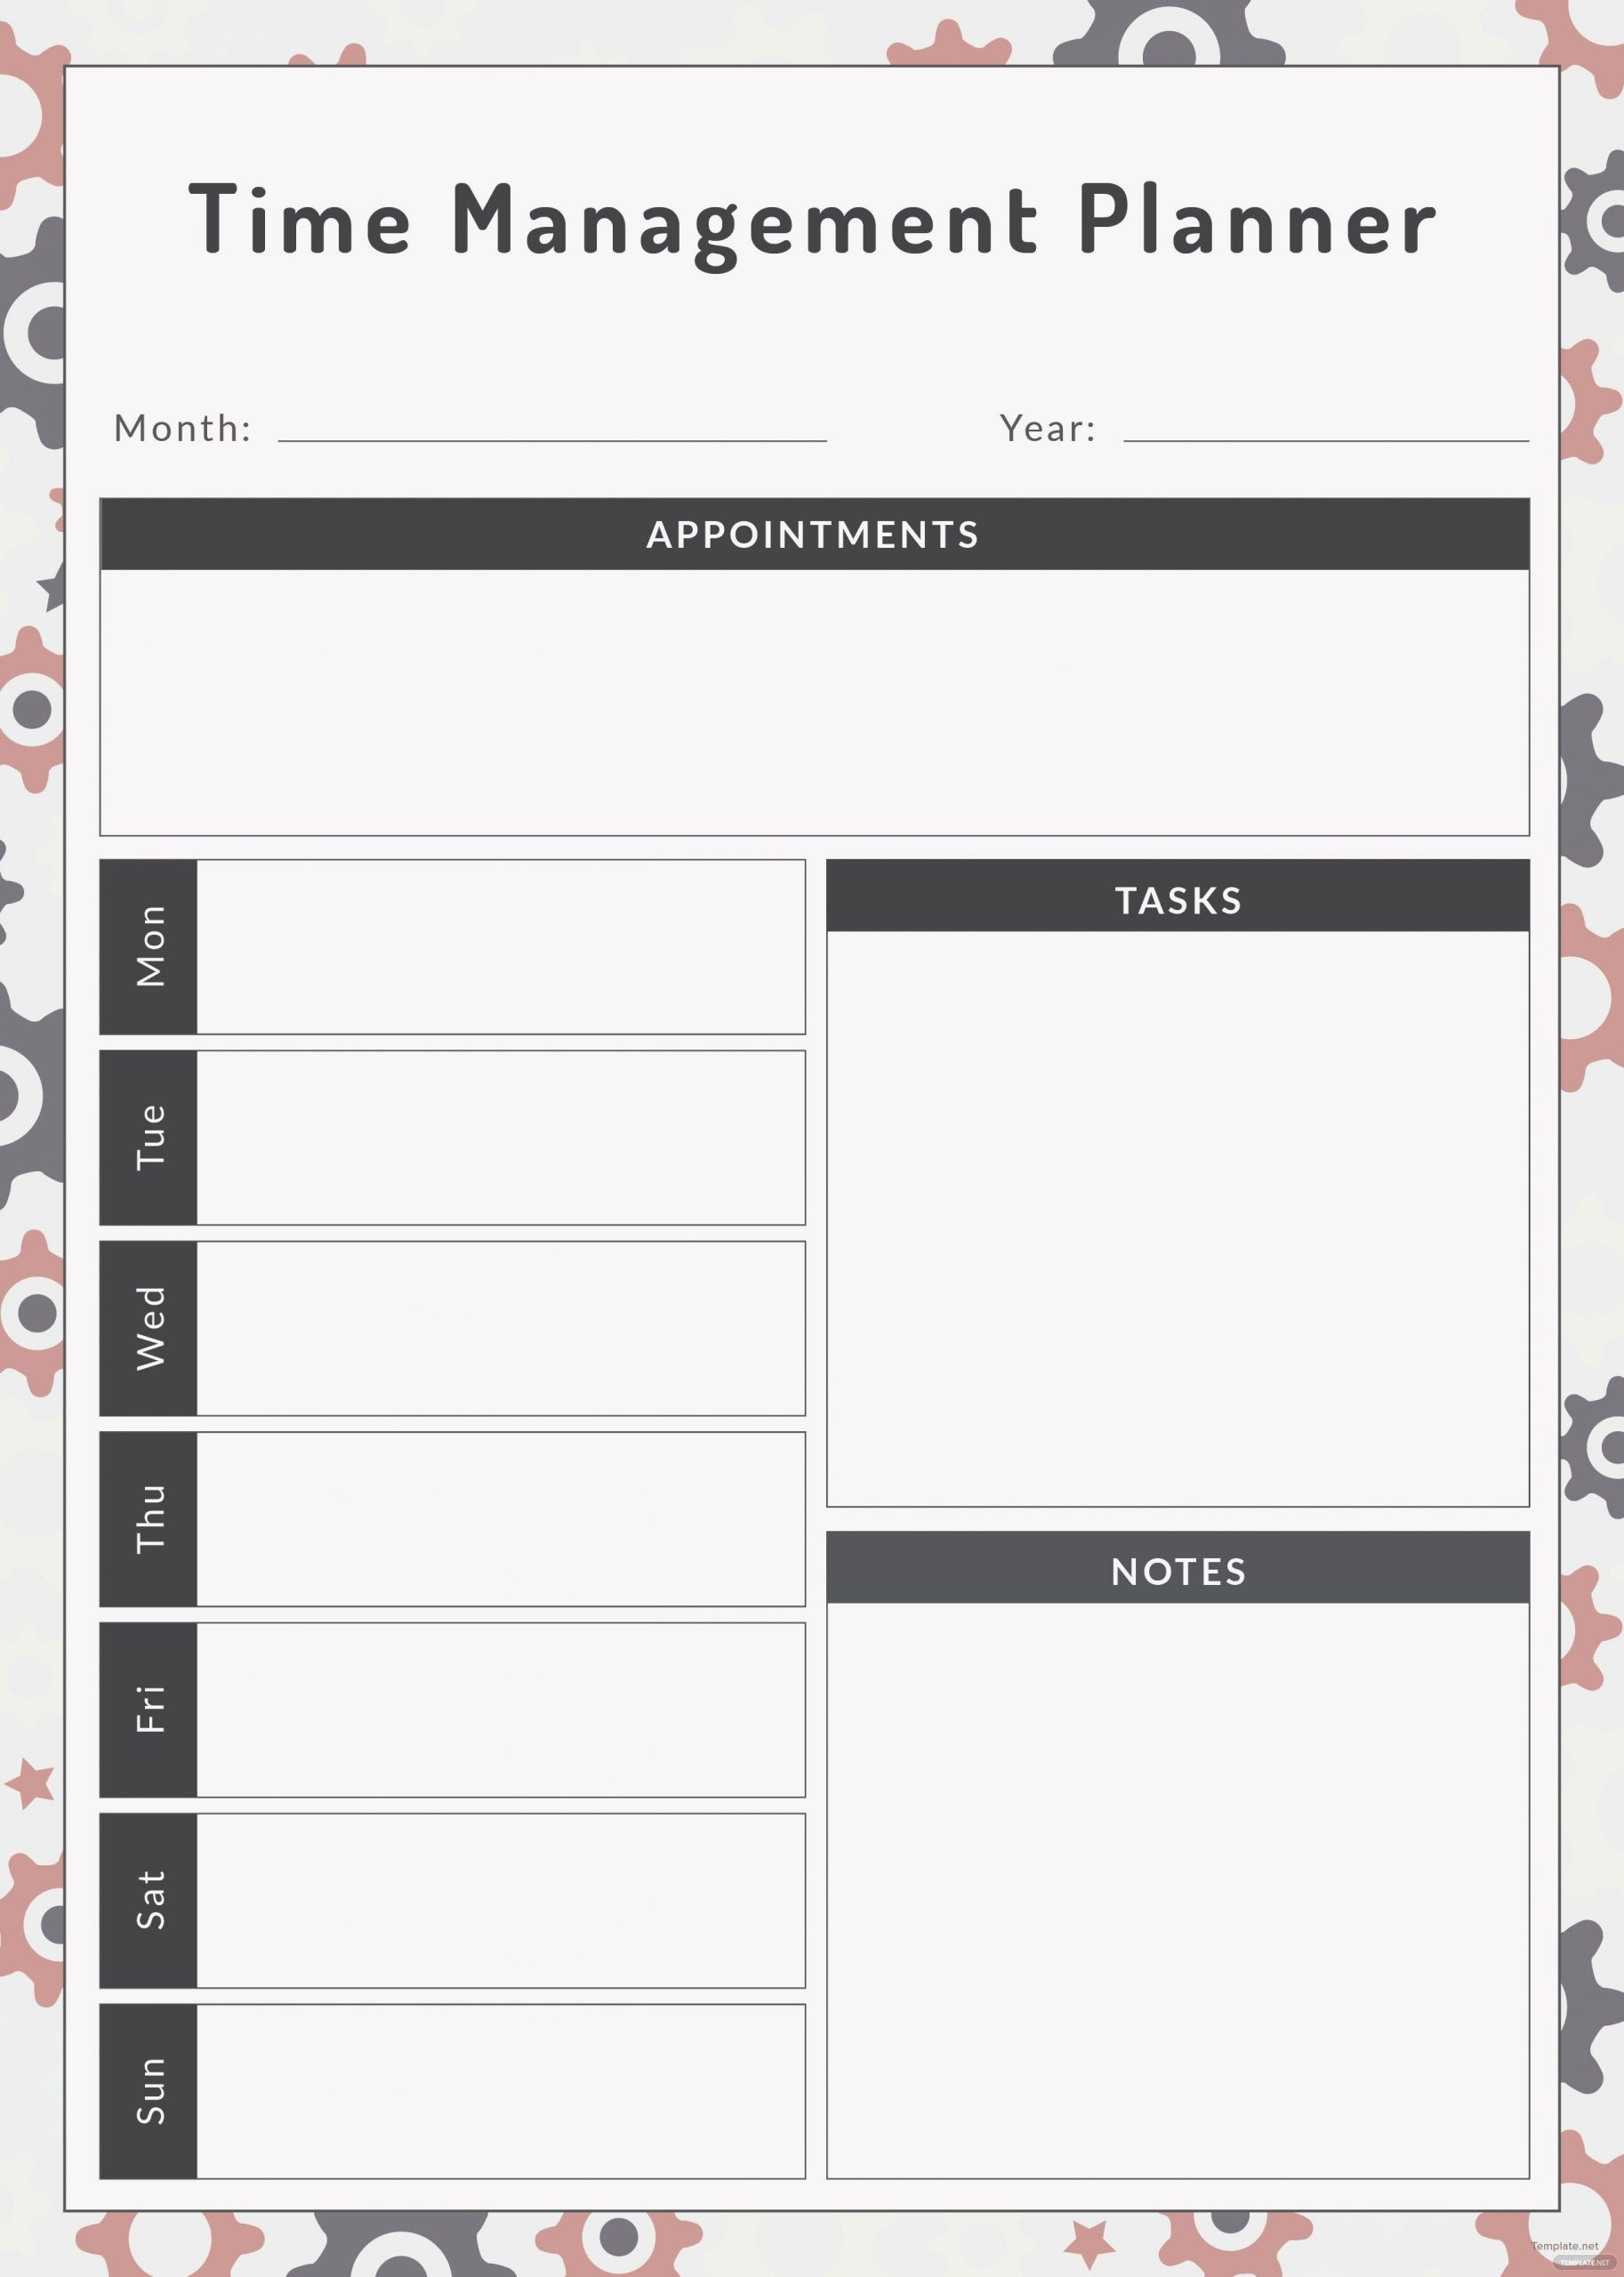 Free Time Management Planner Template In Adobe Illustrator Free Templates For Time Management